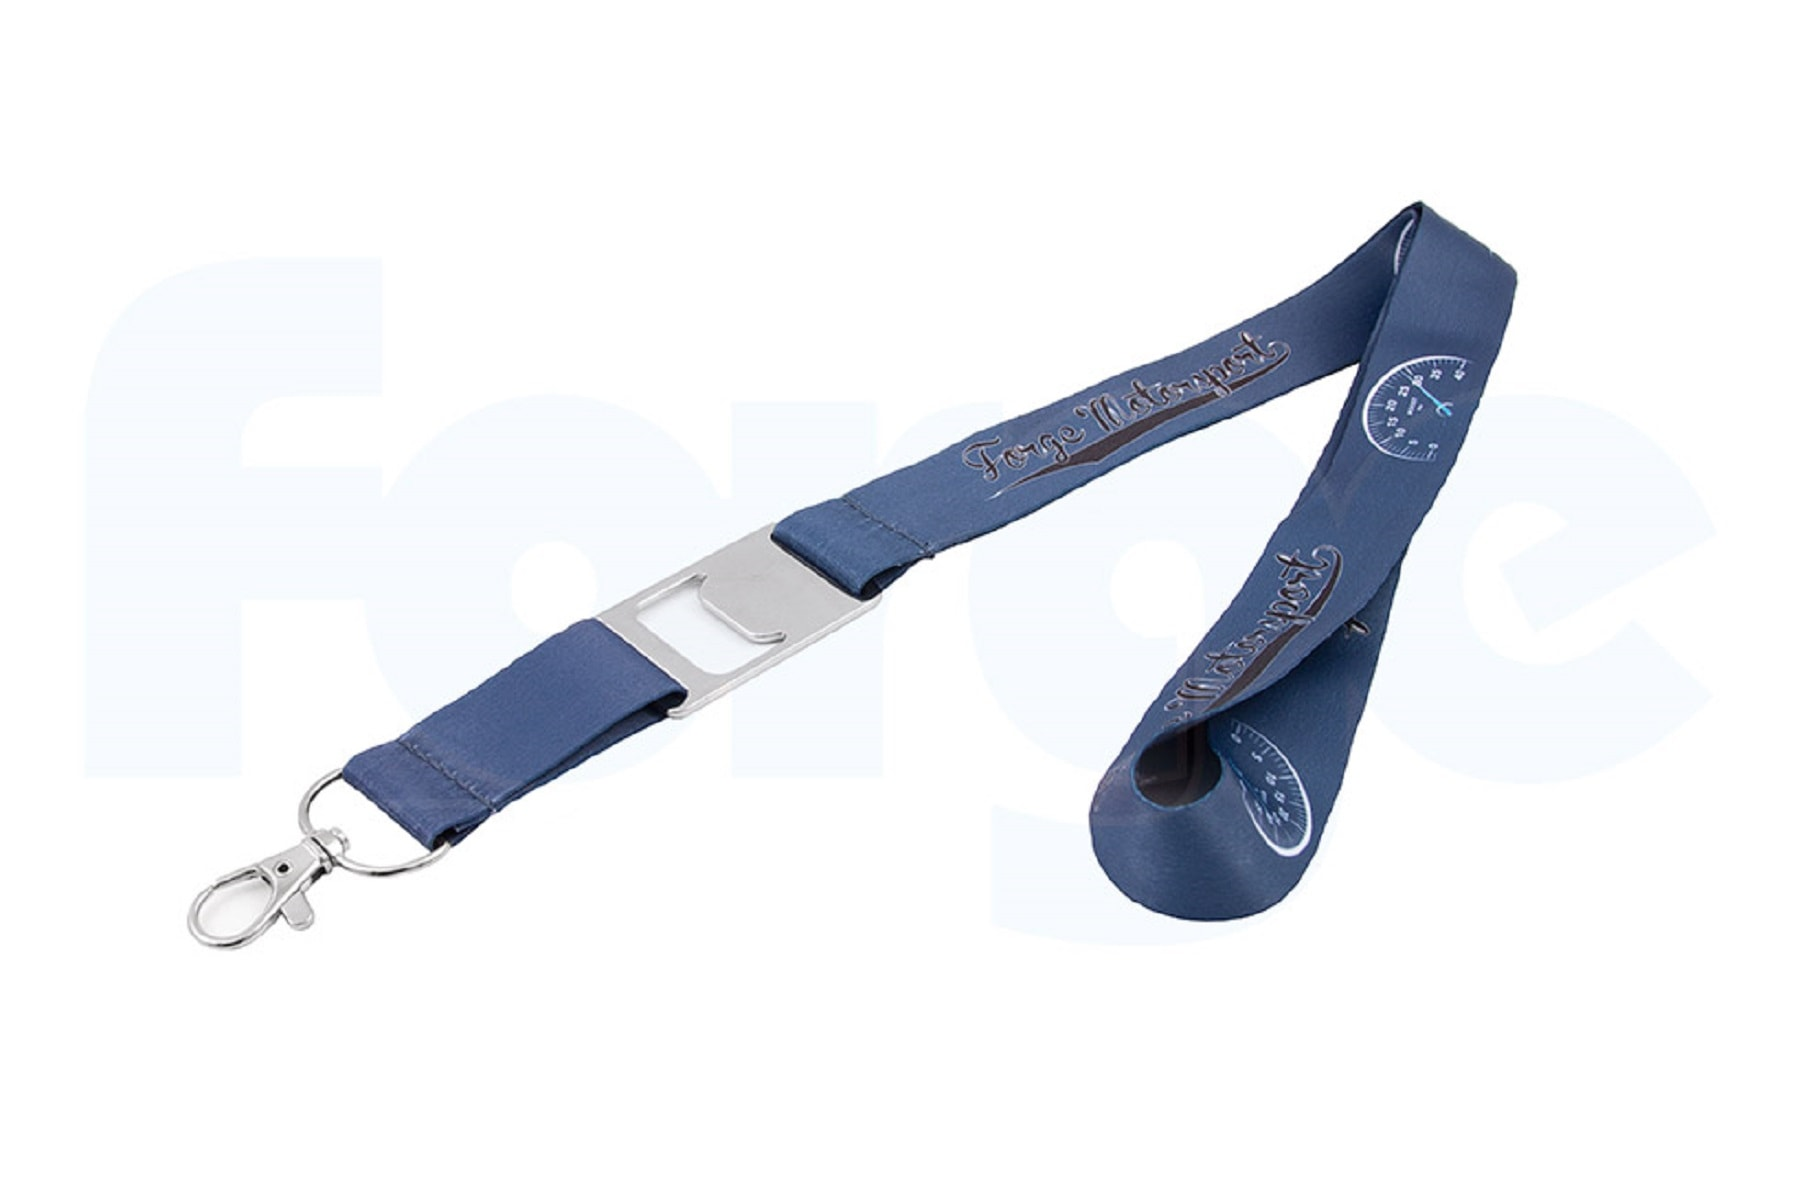 Forge Motorsport Lanyard For Owners Fans Ideal for Keys Shows Track Passes Events Photo Shoots.2